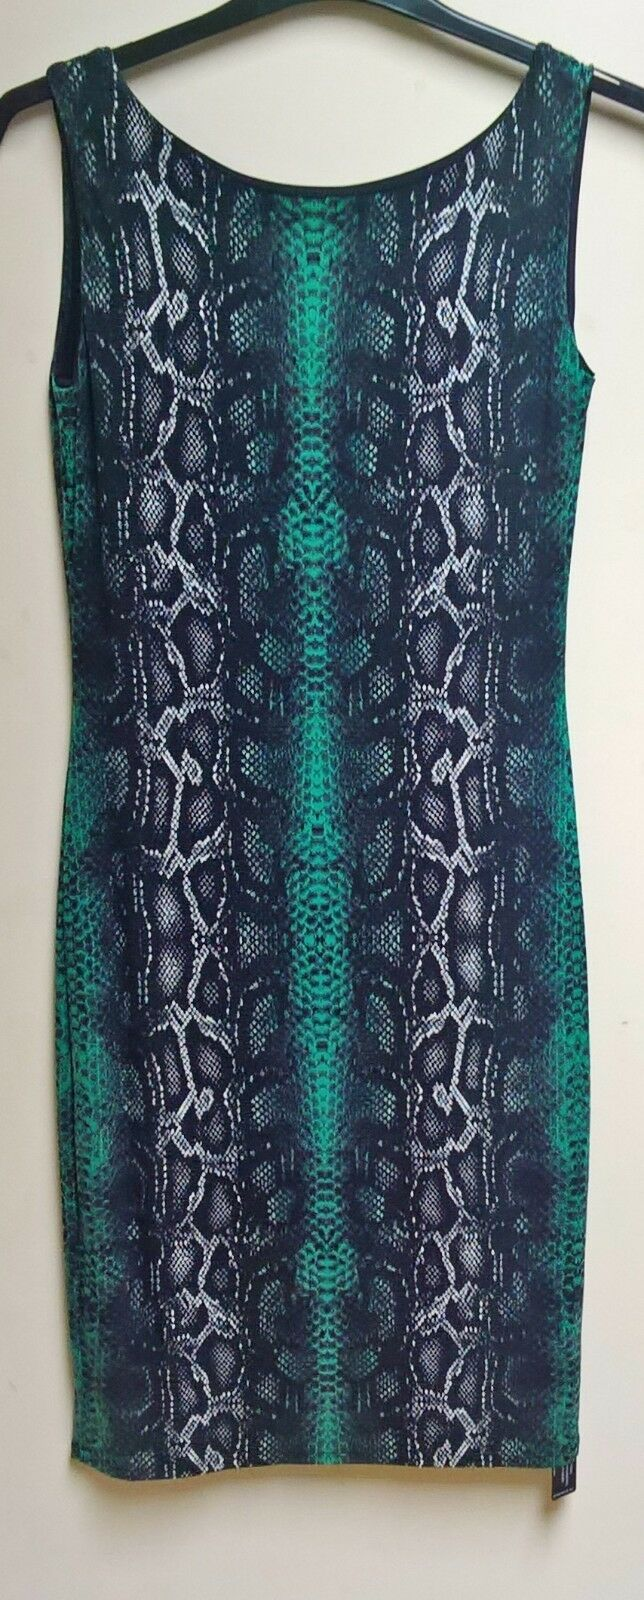 "M&S ""TWIGGY"" Quality Stretch Soft Jersey Green Python Print Dress Size 12 NEW"